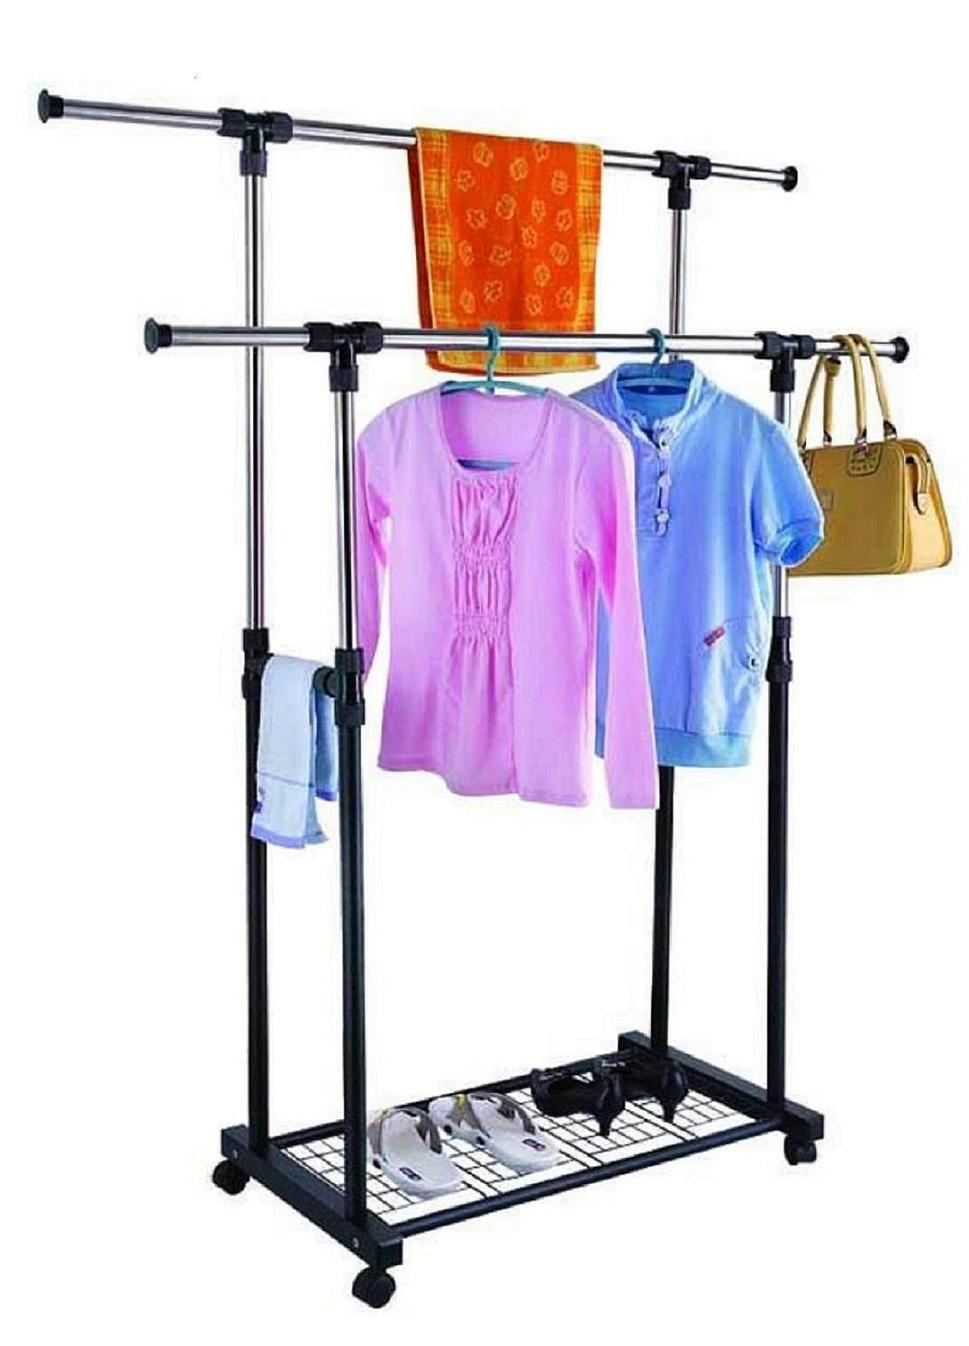 double-pole-telescopic-stainless-steel-clothes-rack-hf06-1